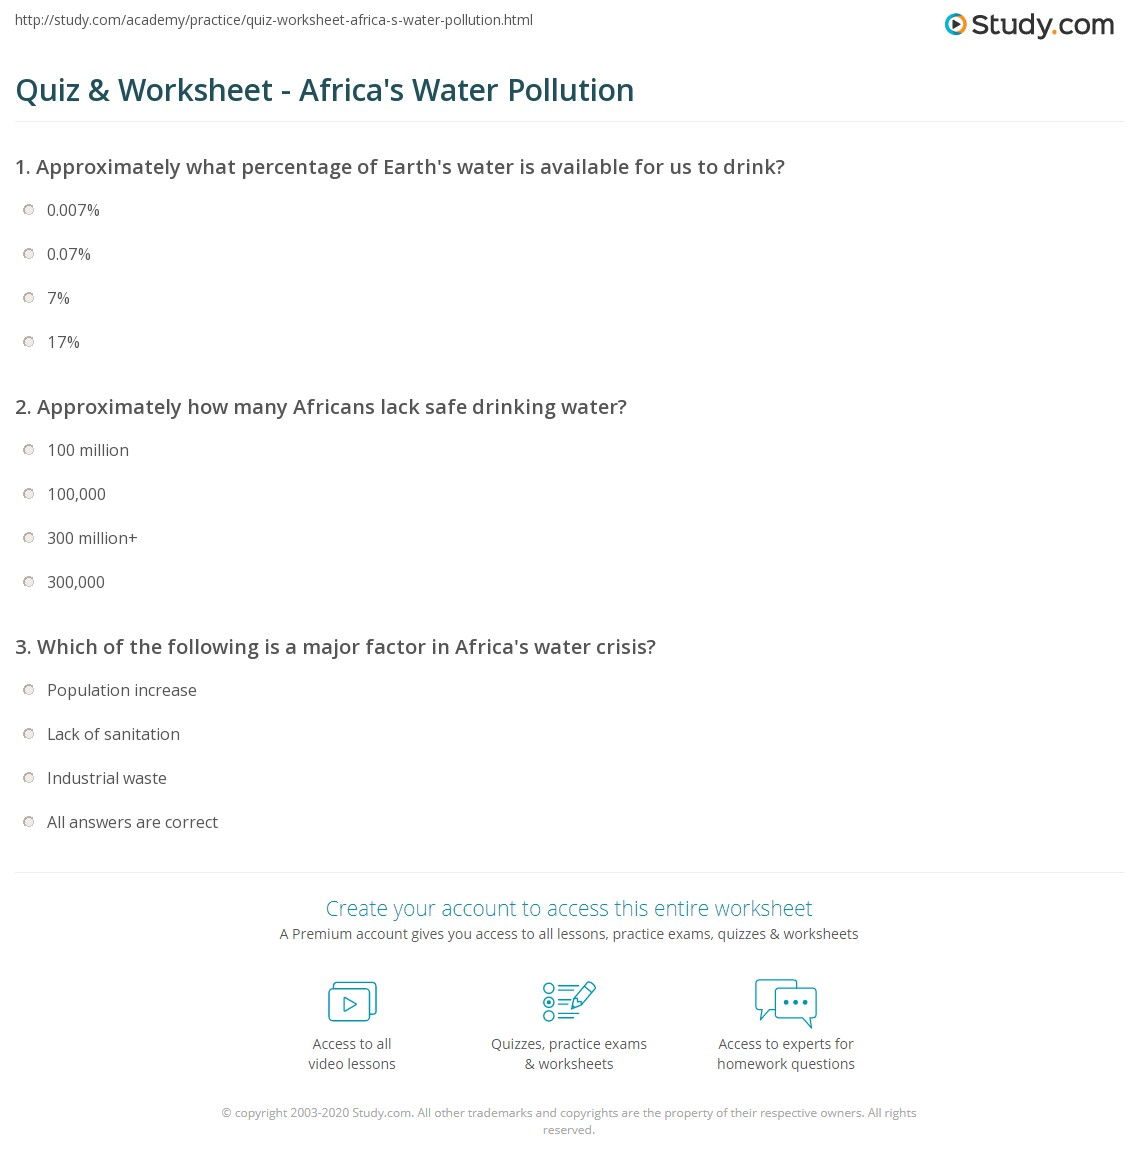 worksheet Water Worksheet quiz worksheet africas water pollution study com print in africa causes and effects worksheet